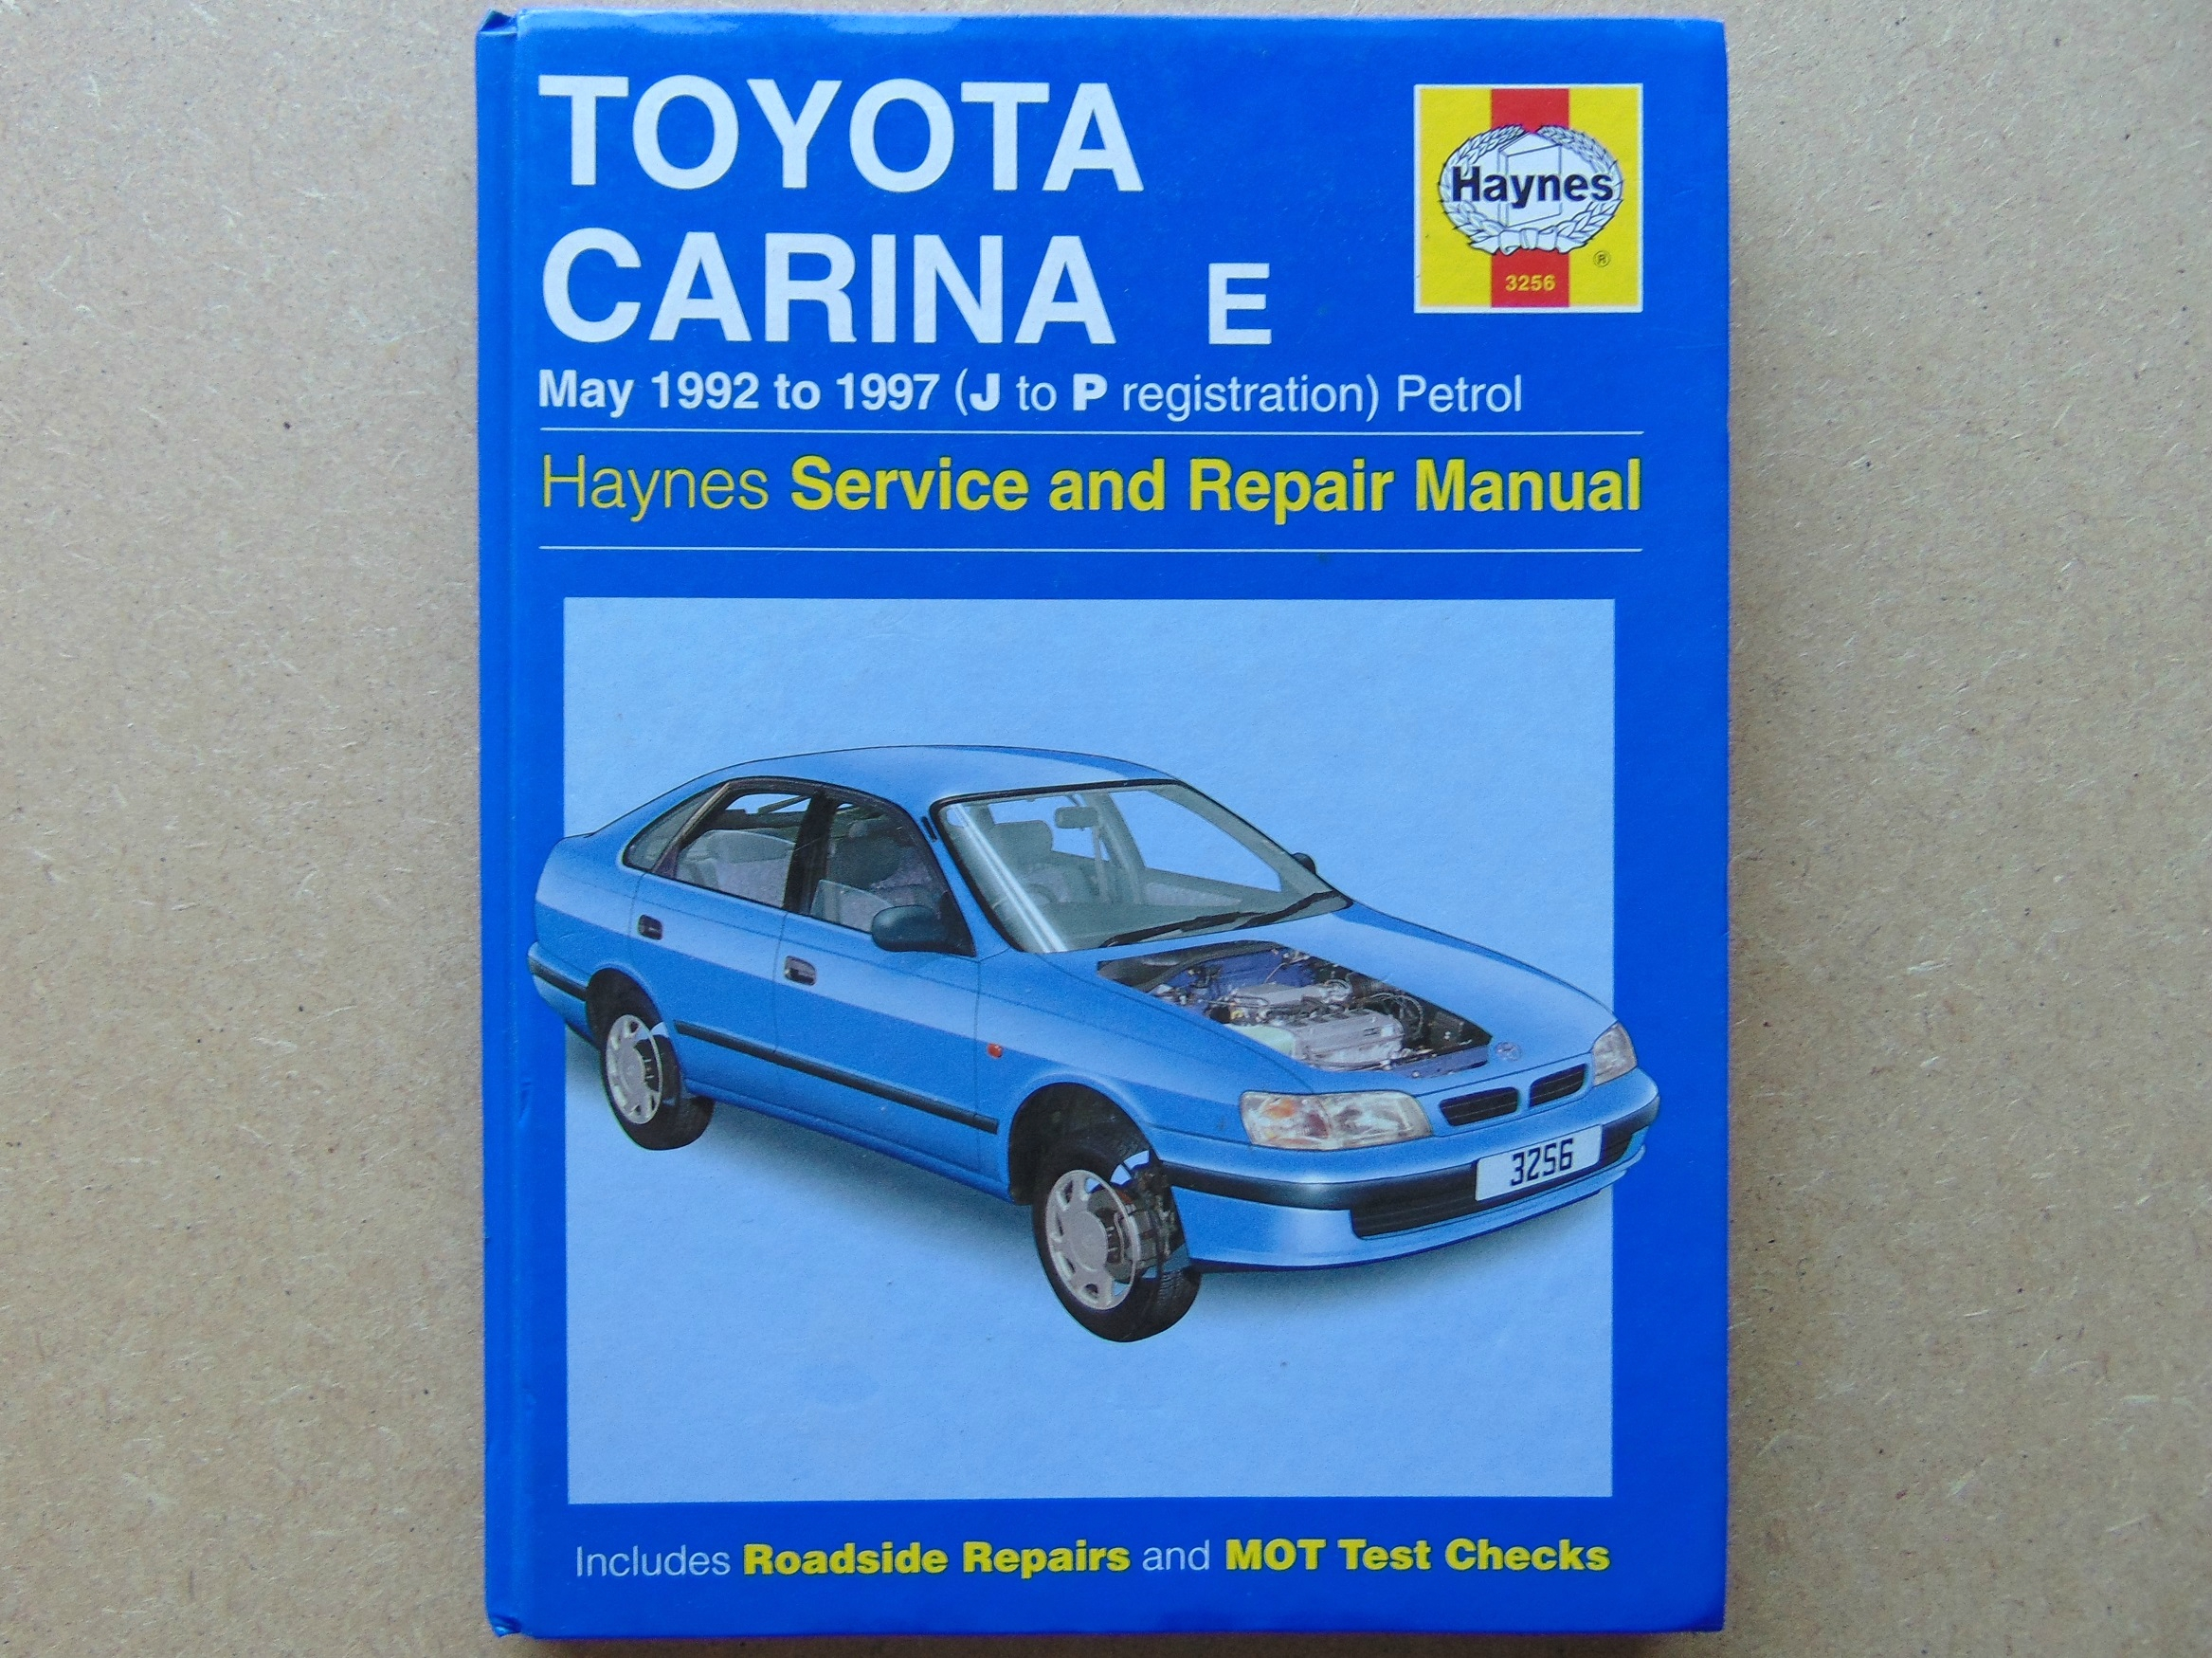 Carina E Service Manual 1999 Chrysler T 038 C Limited 38 Digital Transmission Fuse Box Diagram Array Toyota Petrol Haynes Repair Covers May 92 97 J Rh Toyotaownersclub